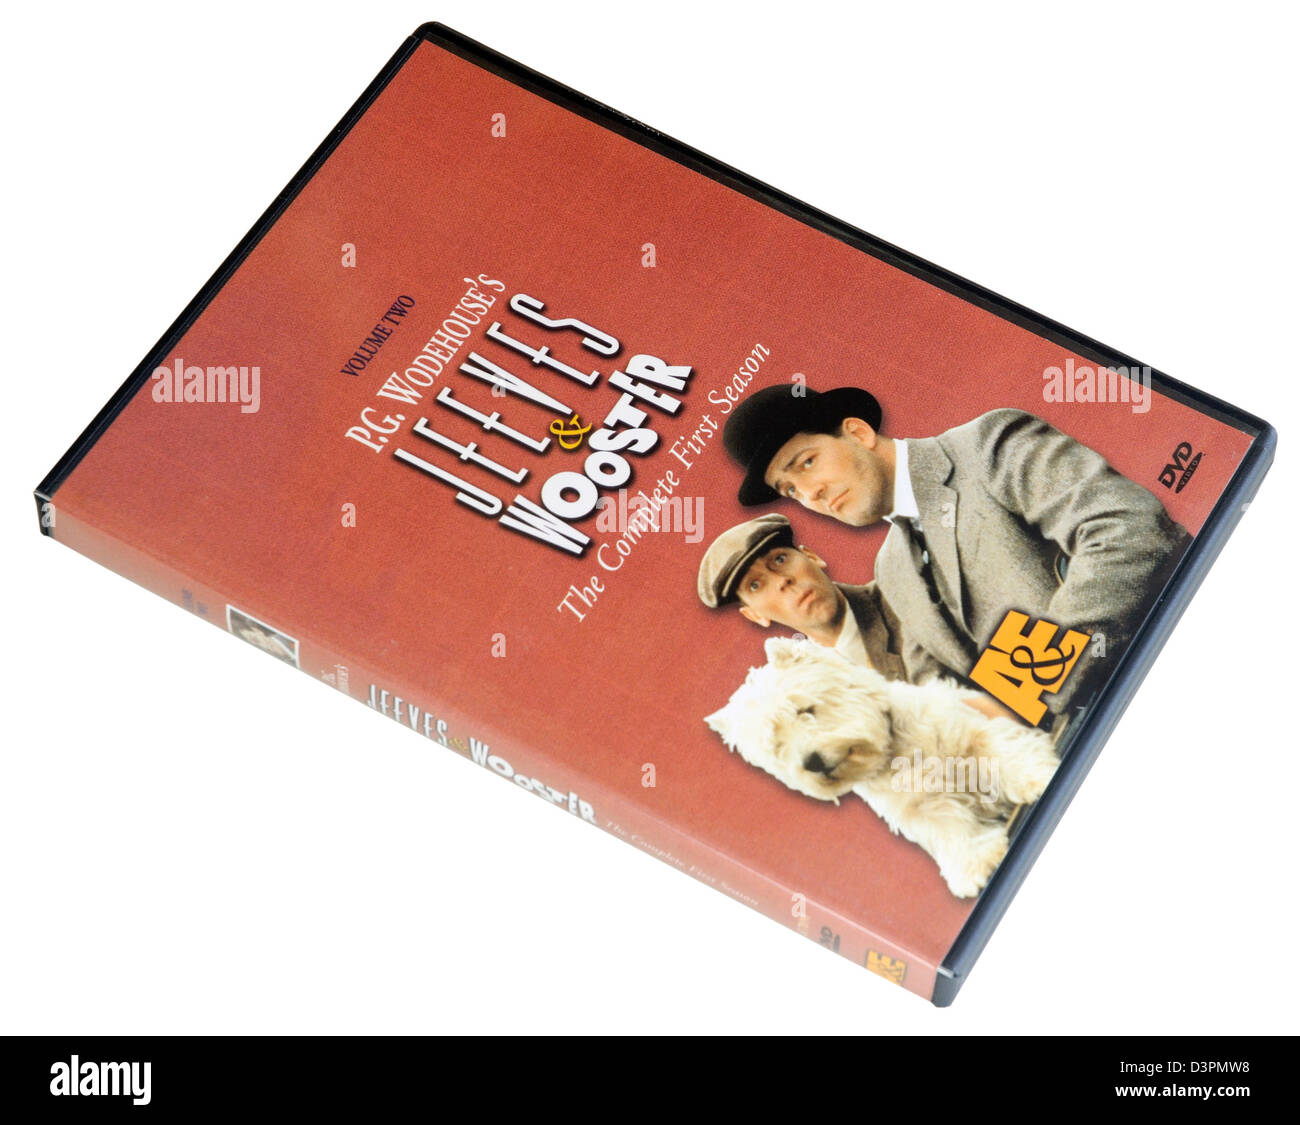 Stephen Fry and Hugh Laurie Jeeves and Wooster DVD - Stock Image